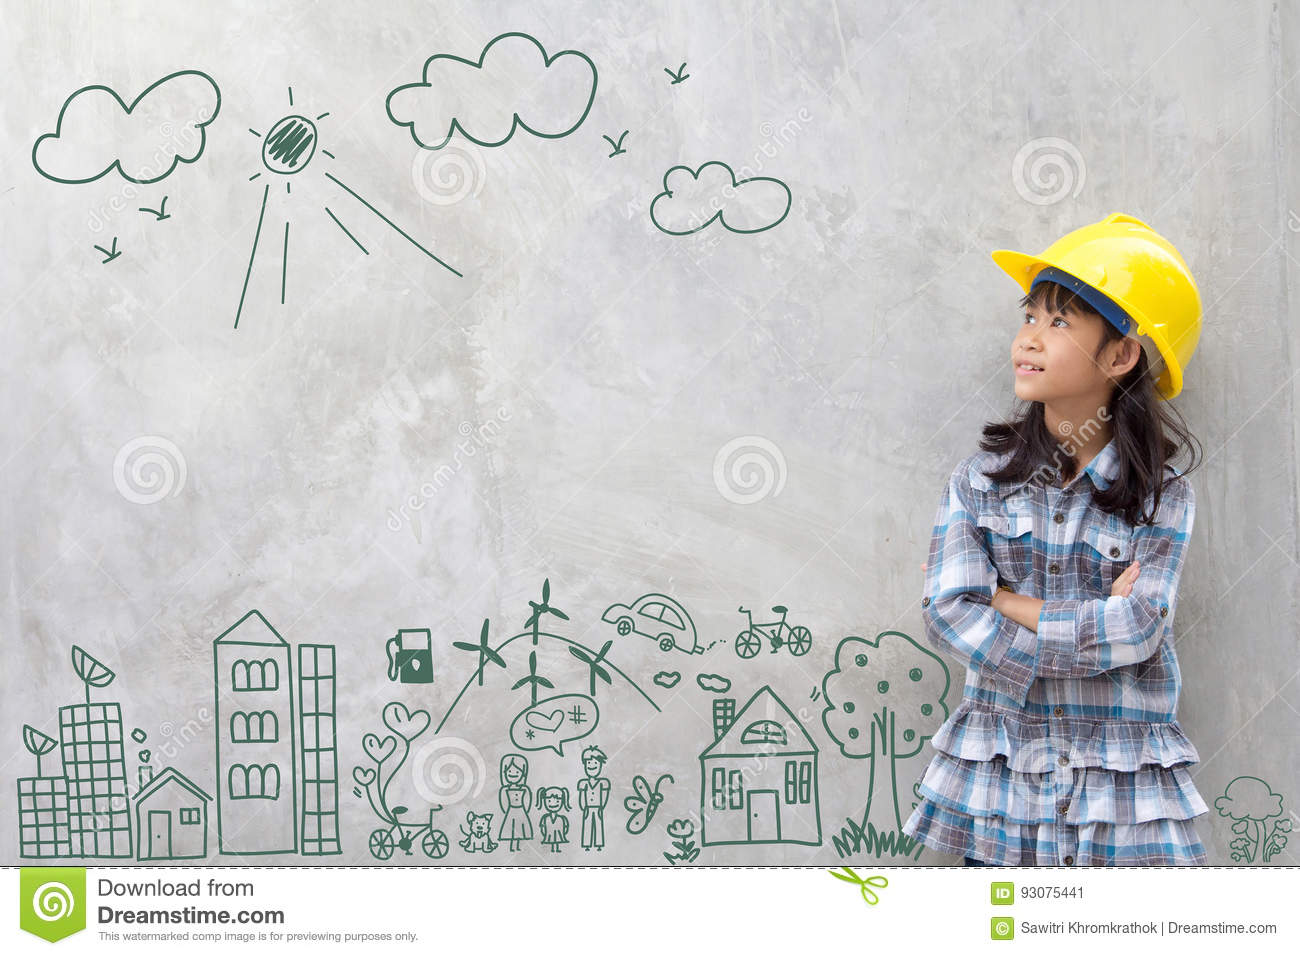 https://thumbs.dreamstime.com/z/little-girl-engineering-creative-drawing-environment-happy-family-eco-friendly-save-energy-against-brick-wall-93075441.jpg